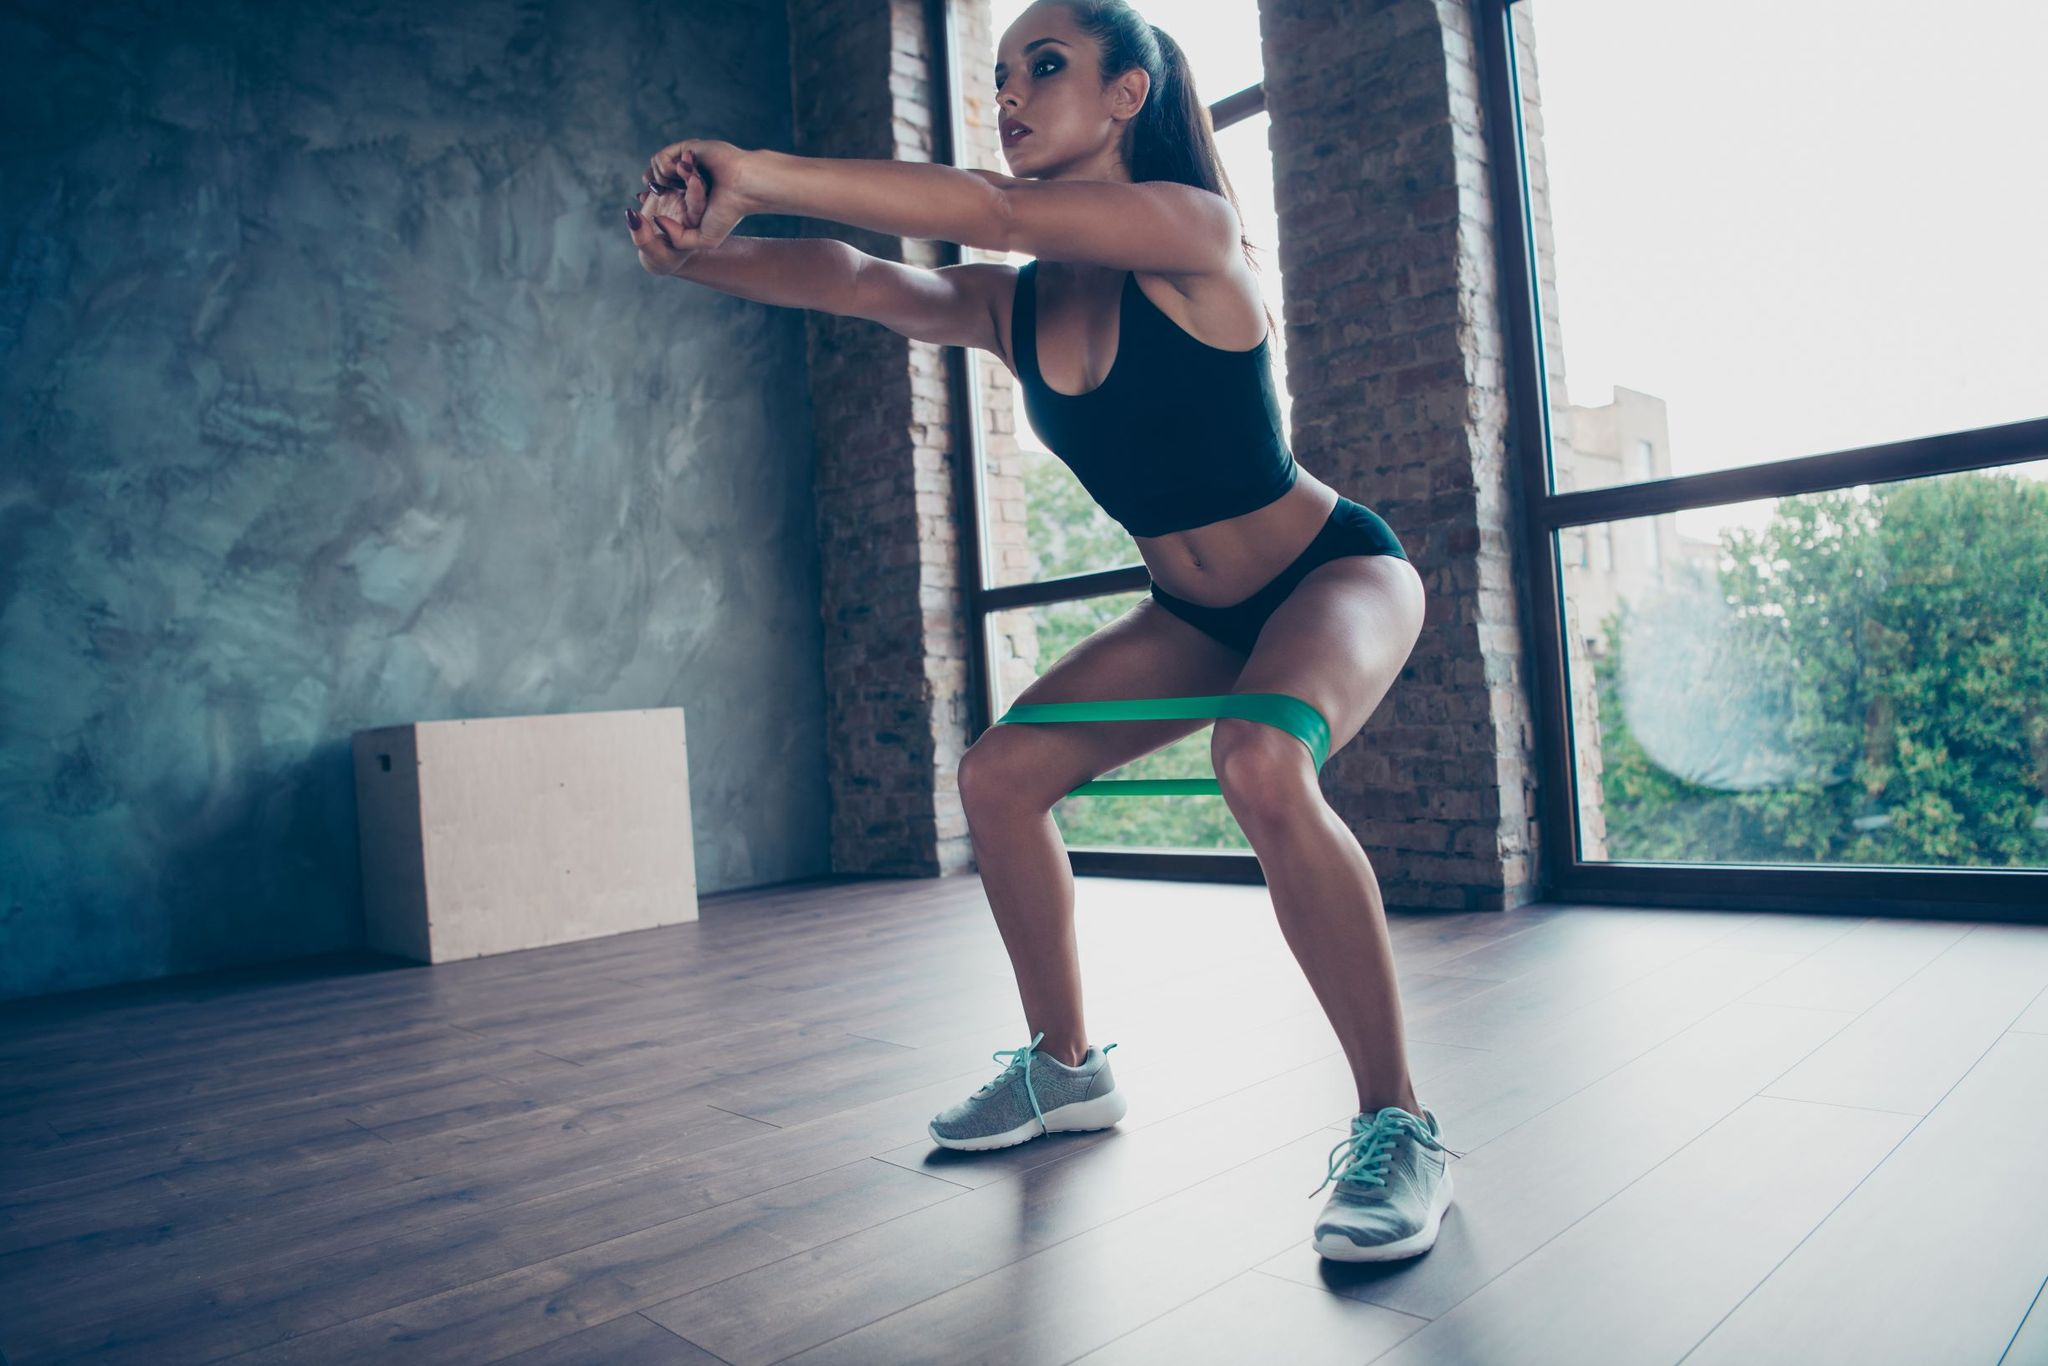 How to get a bigger butt: Woman doing resistance band squats